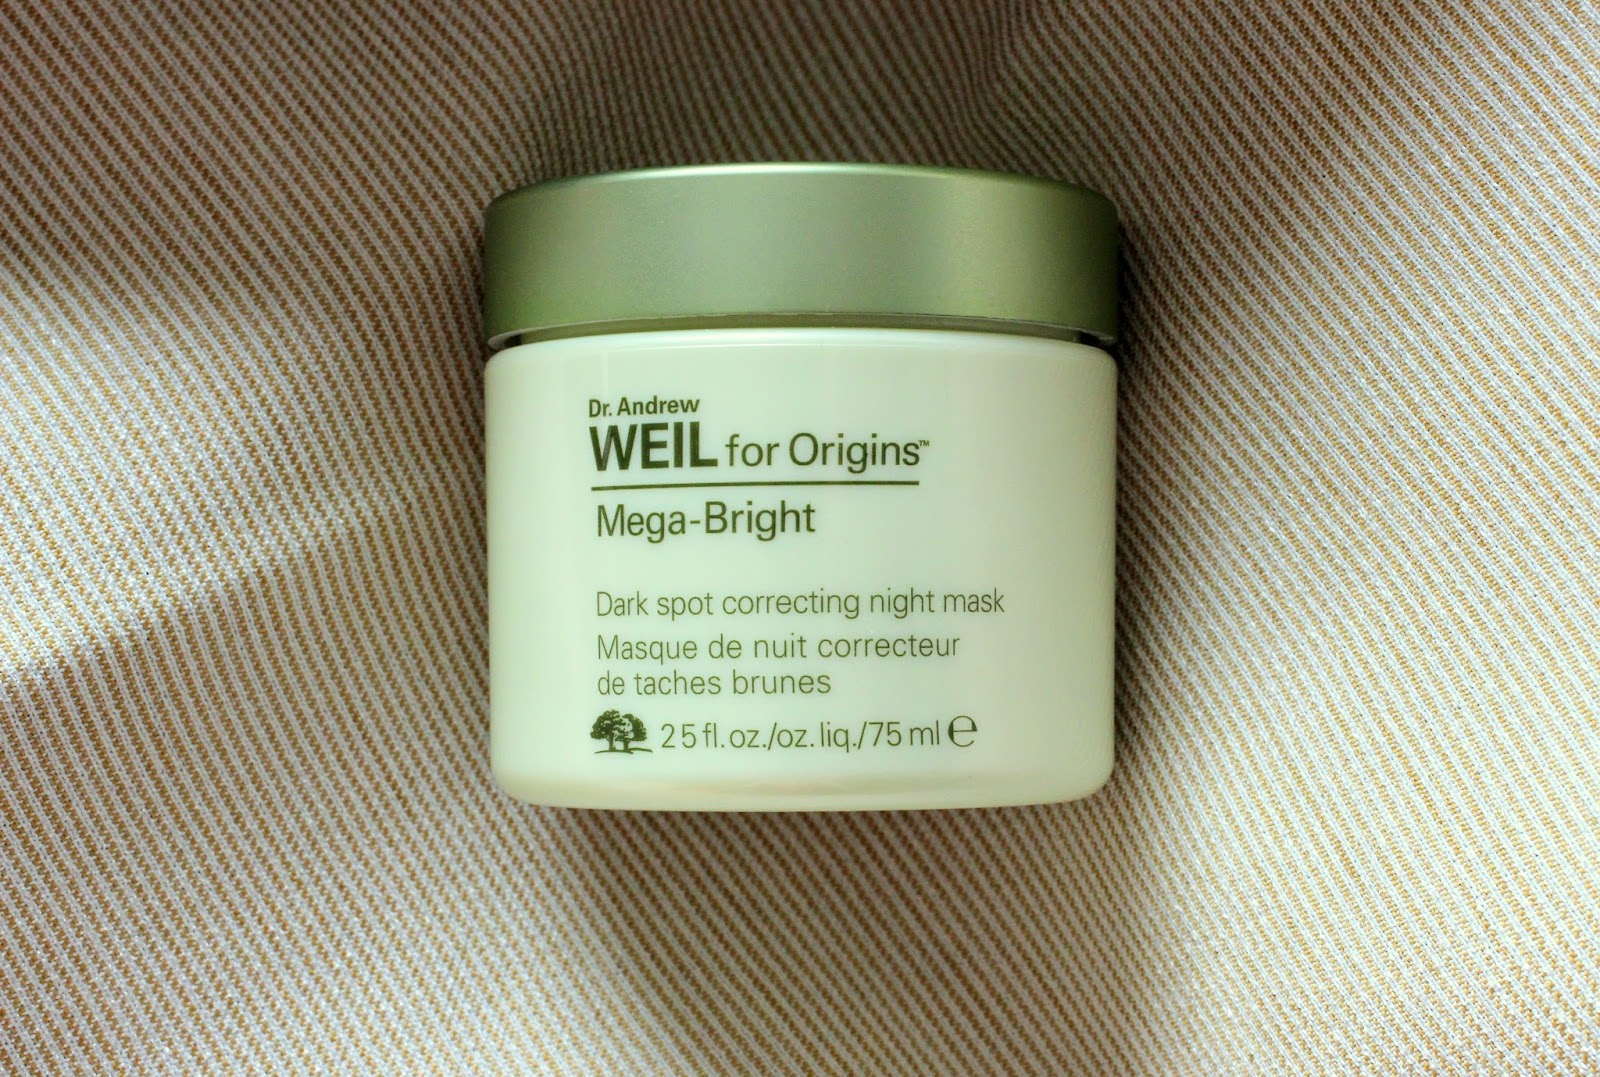 Dr Weil Origins Mega-Bright Dark Spot Correcting Night Mask Review